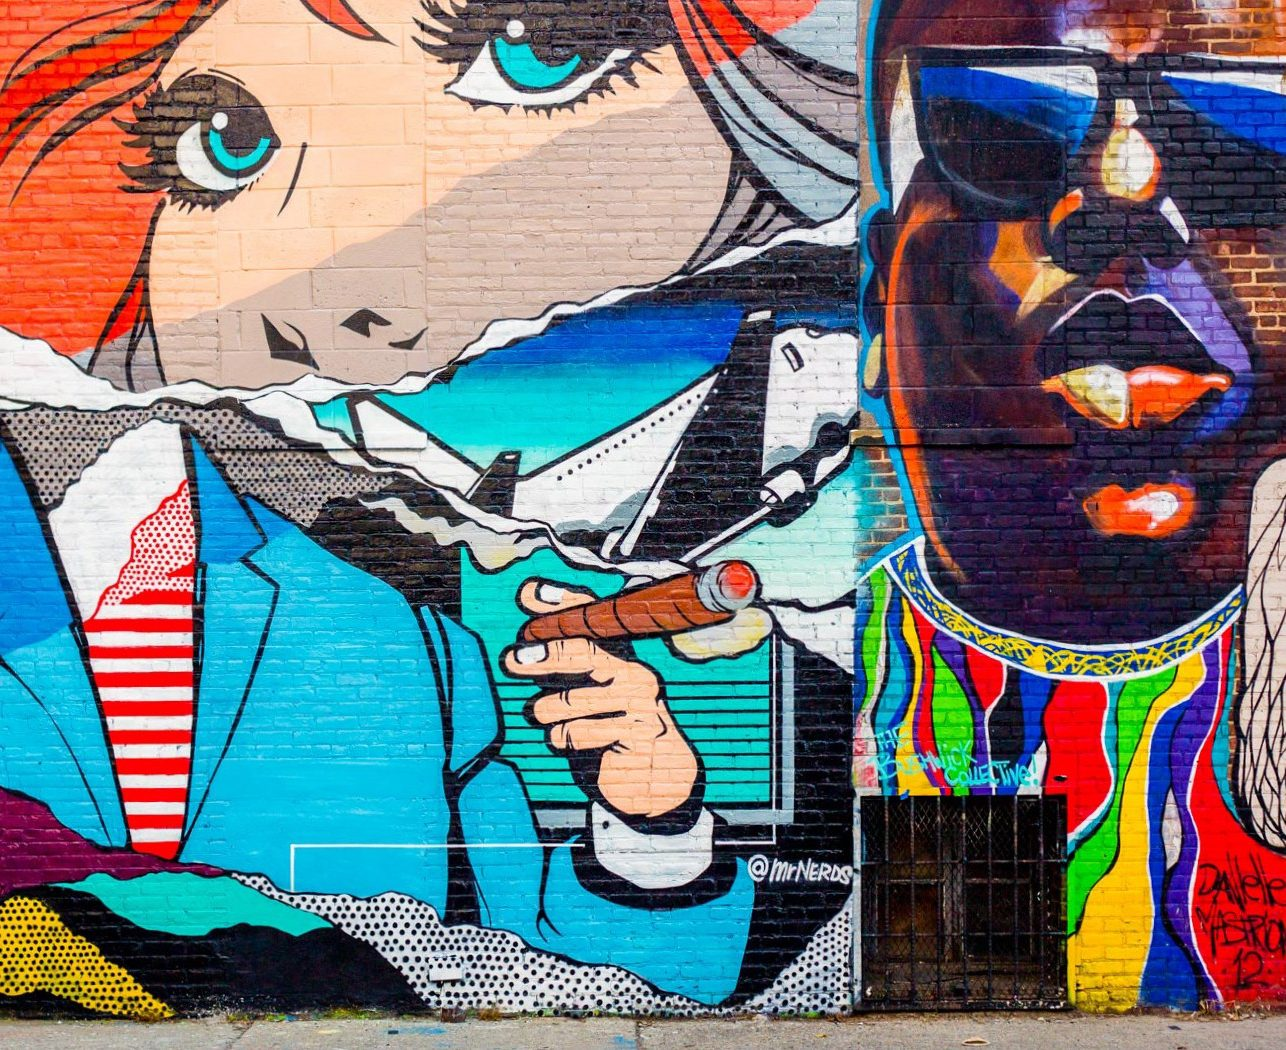 Where to find art in the streets of New York?